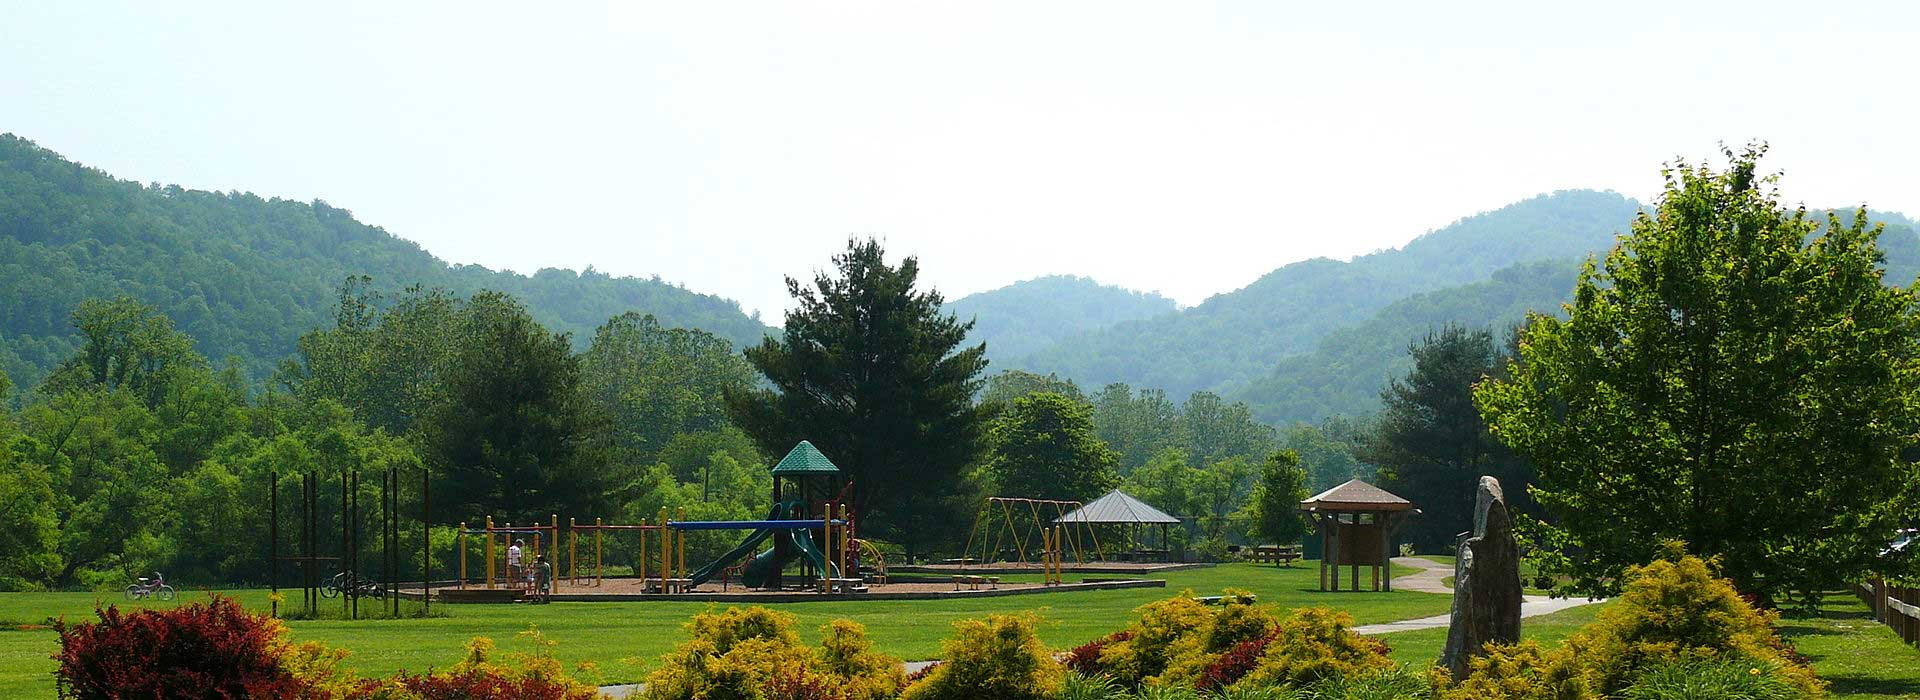 Valle Crucis Nc Weather High Country Weather